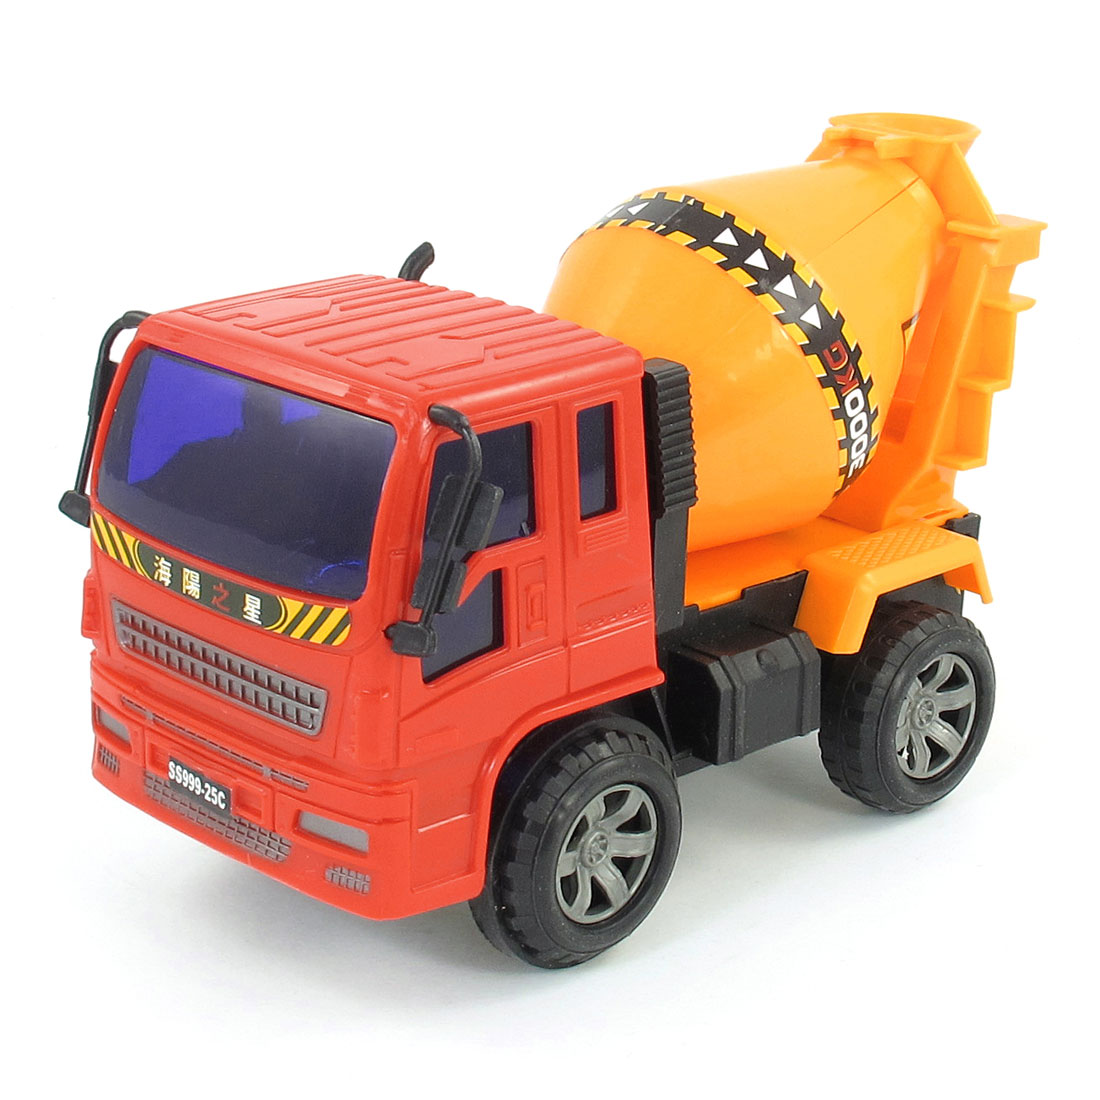 Kids Red Dark Yellow Plastic Engineering Cement Mixer Truck Model Toy